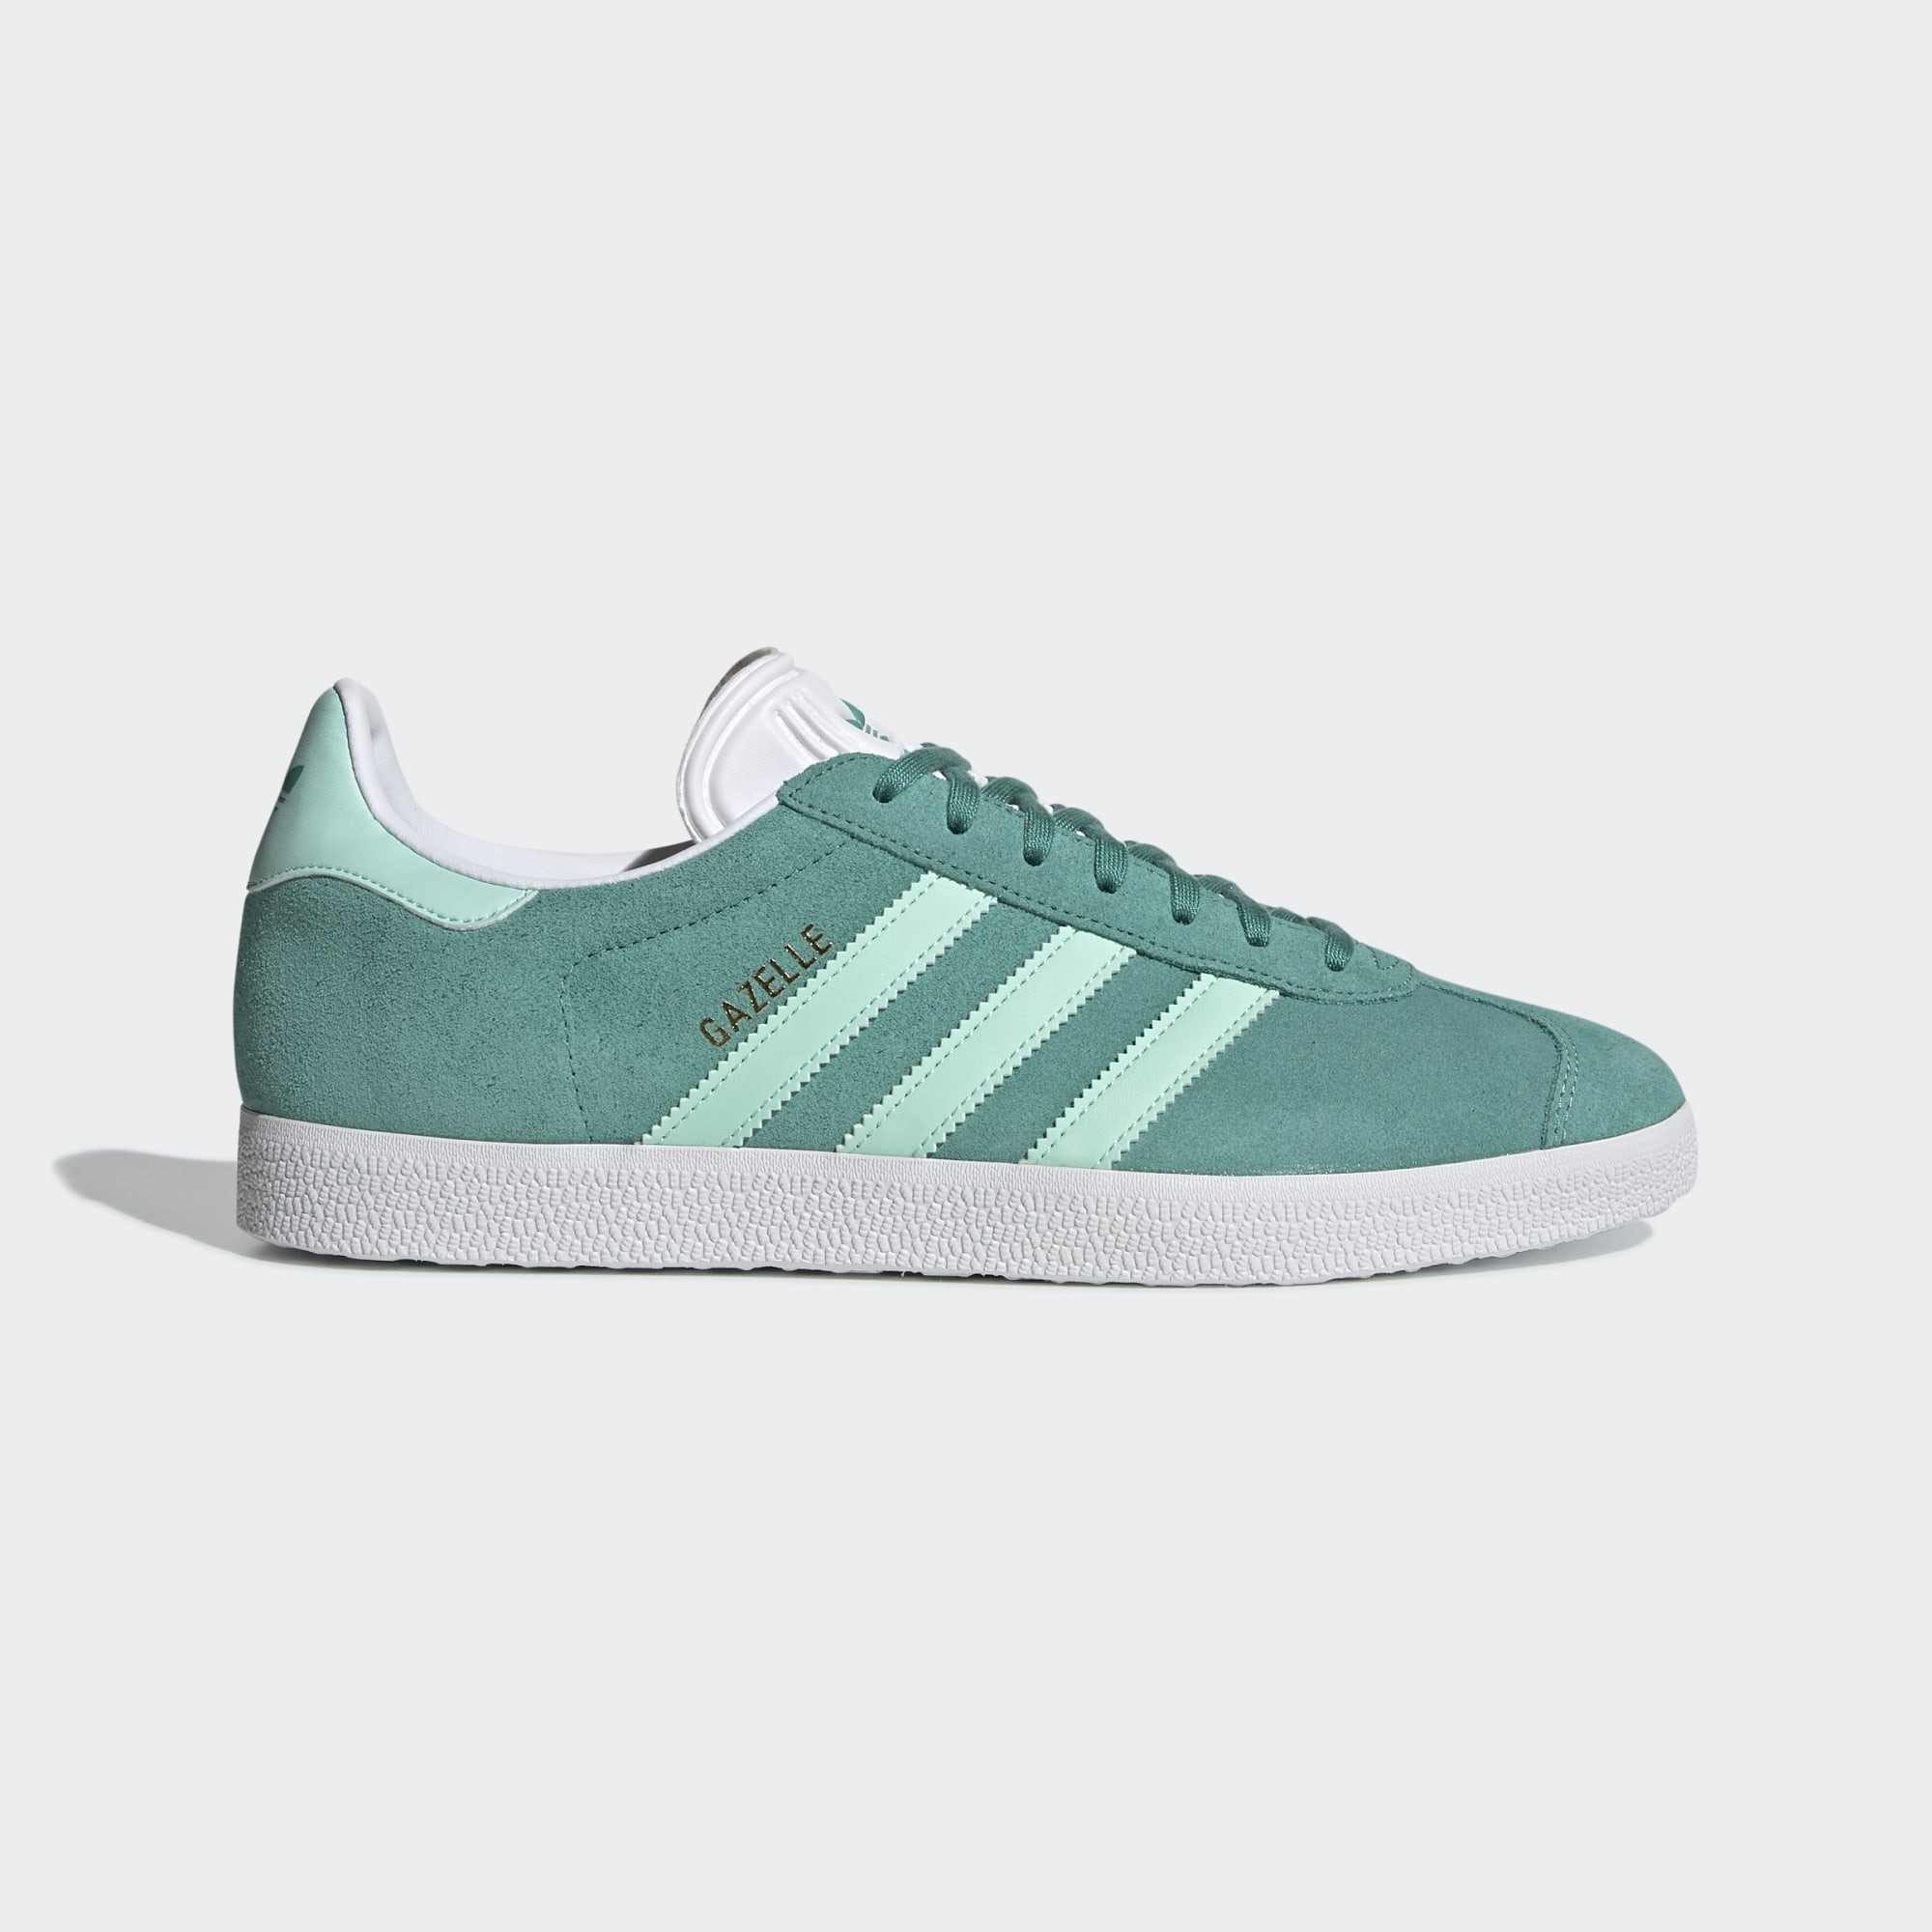 Adidas Originals Gazelle Green Mint BD7497